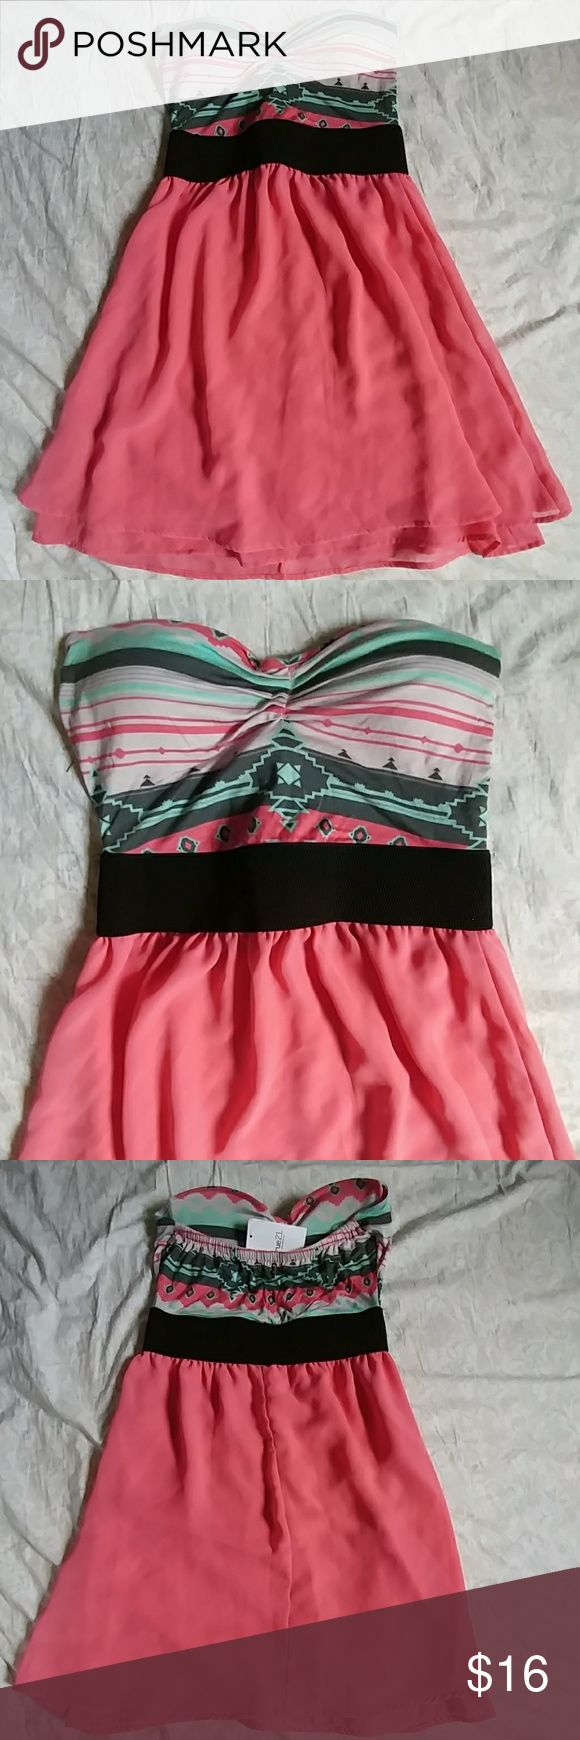 🌅Rue21 coral strapless dress NEW🌅 Coral pink strapless flowy dress with black stretch waist band. Mint green coral and white Aztec design at top with padded bust. Size medium. Cute for party summer barbecue or nice for casual wedding. 🌺New with tags! Rue 21 Dresses Strapless